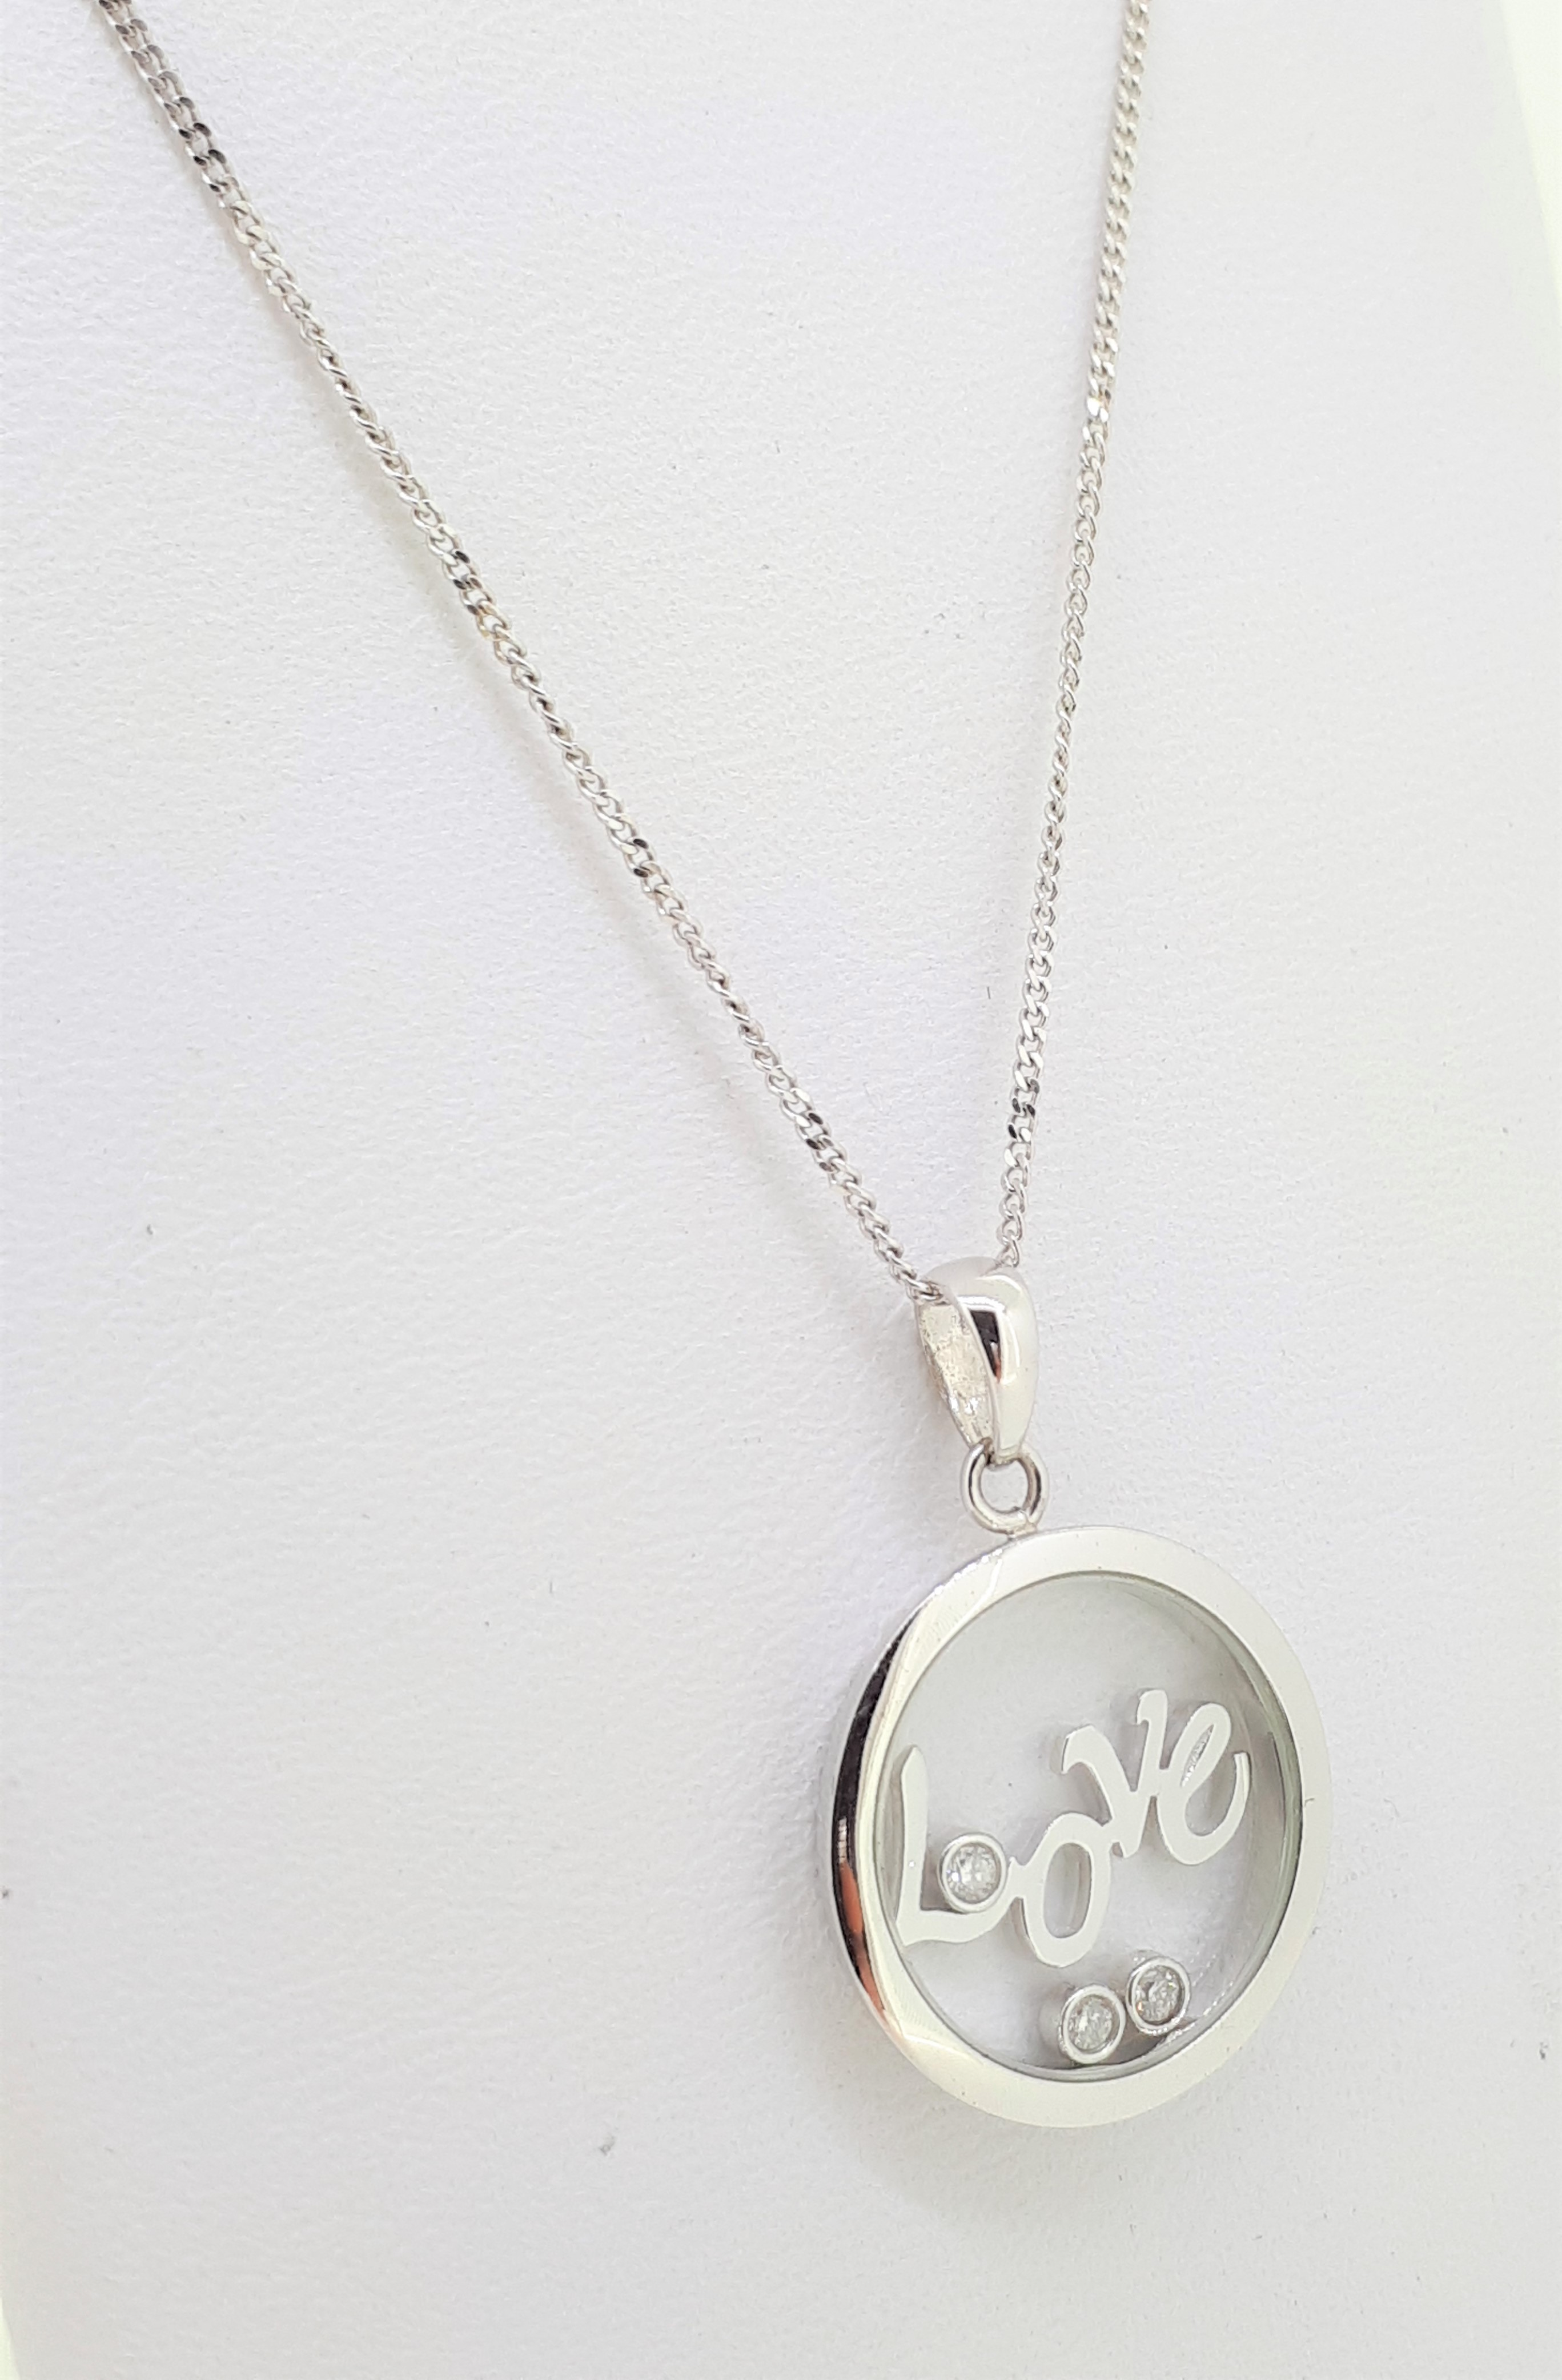 9ct White Gold 'Love' Circle Diamond Pendant on Curb Chain Necklace - Image 2 of 5